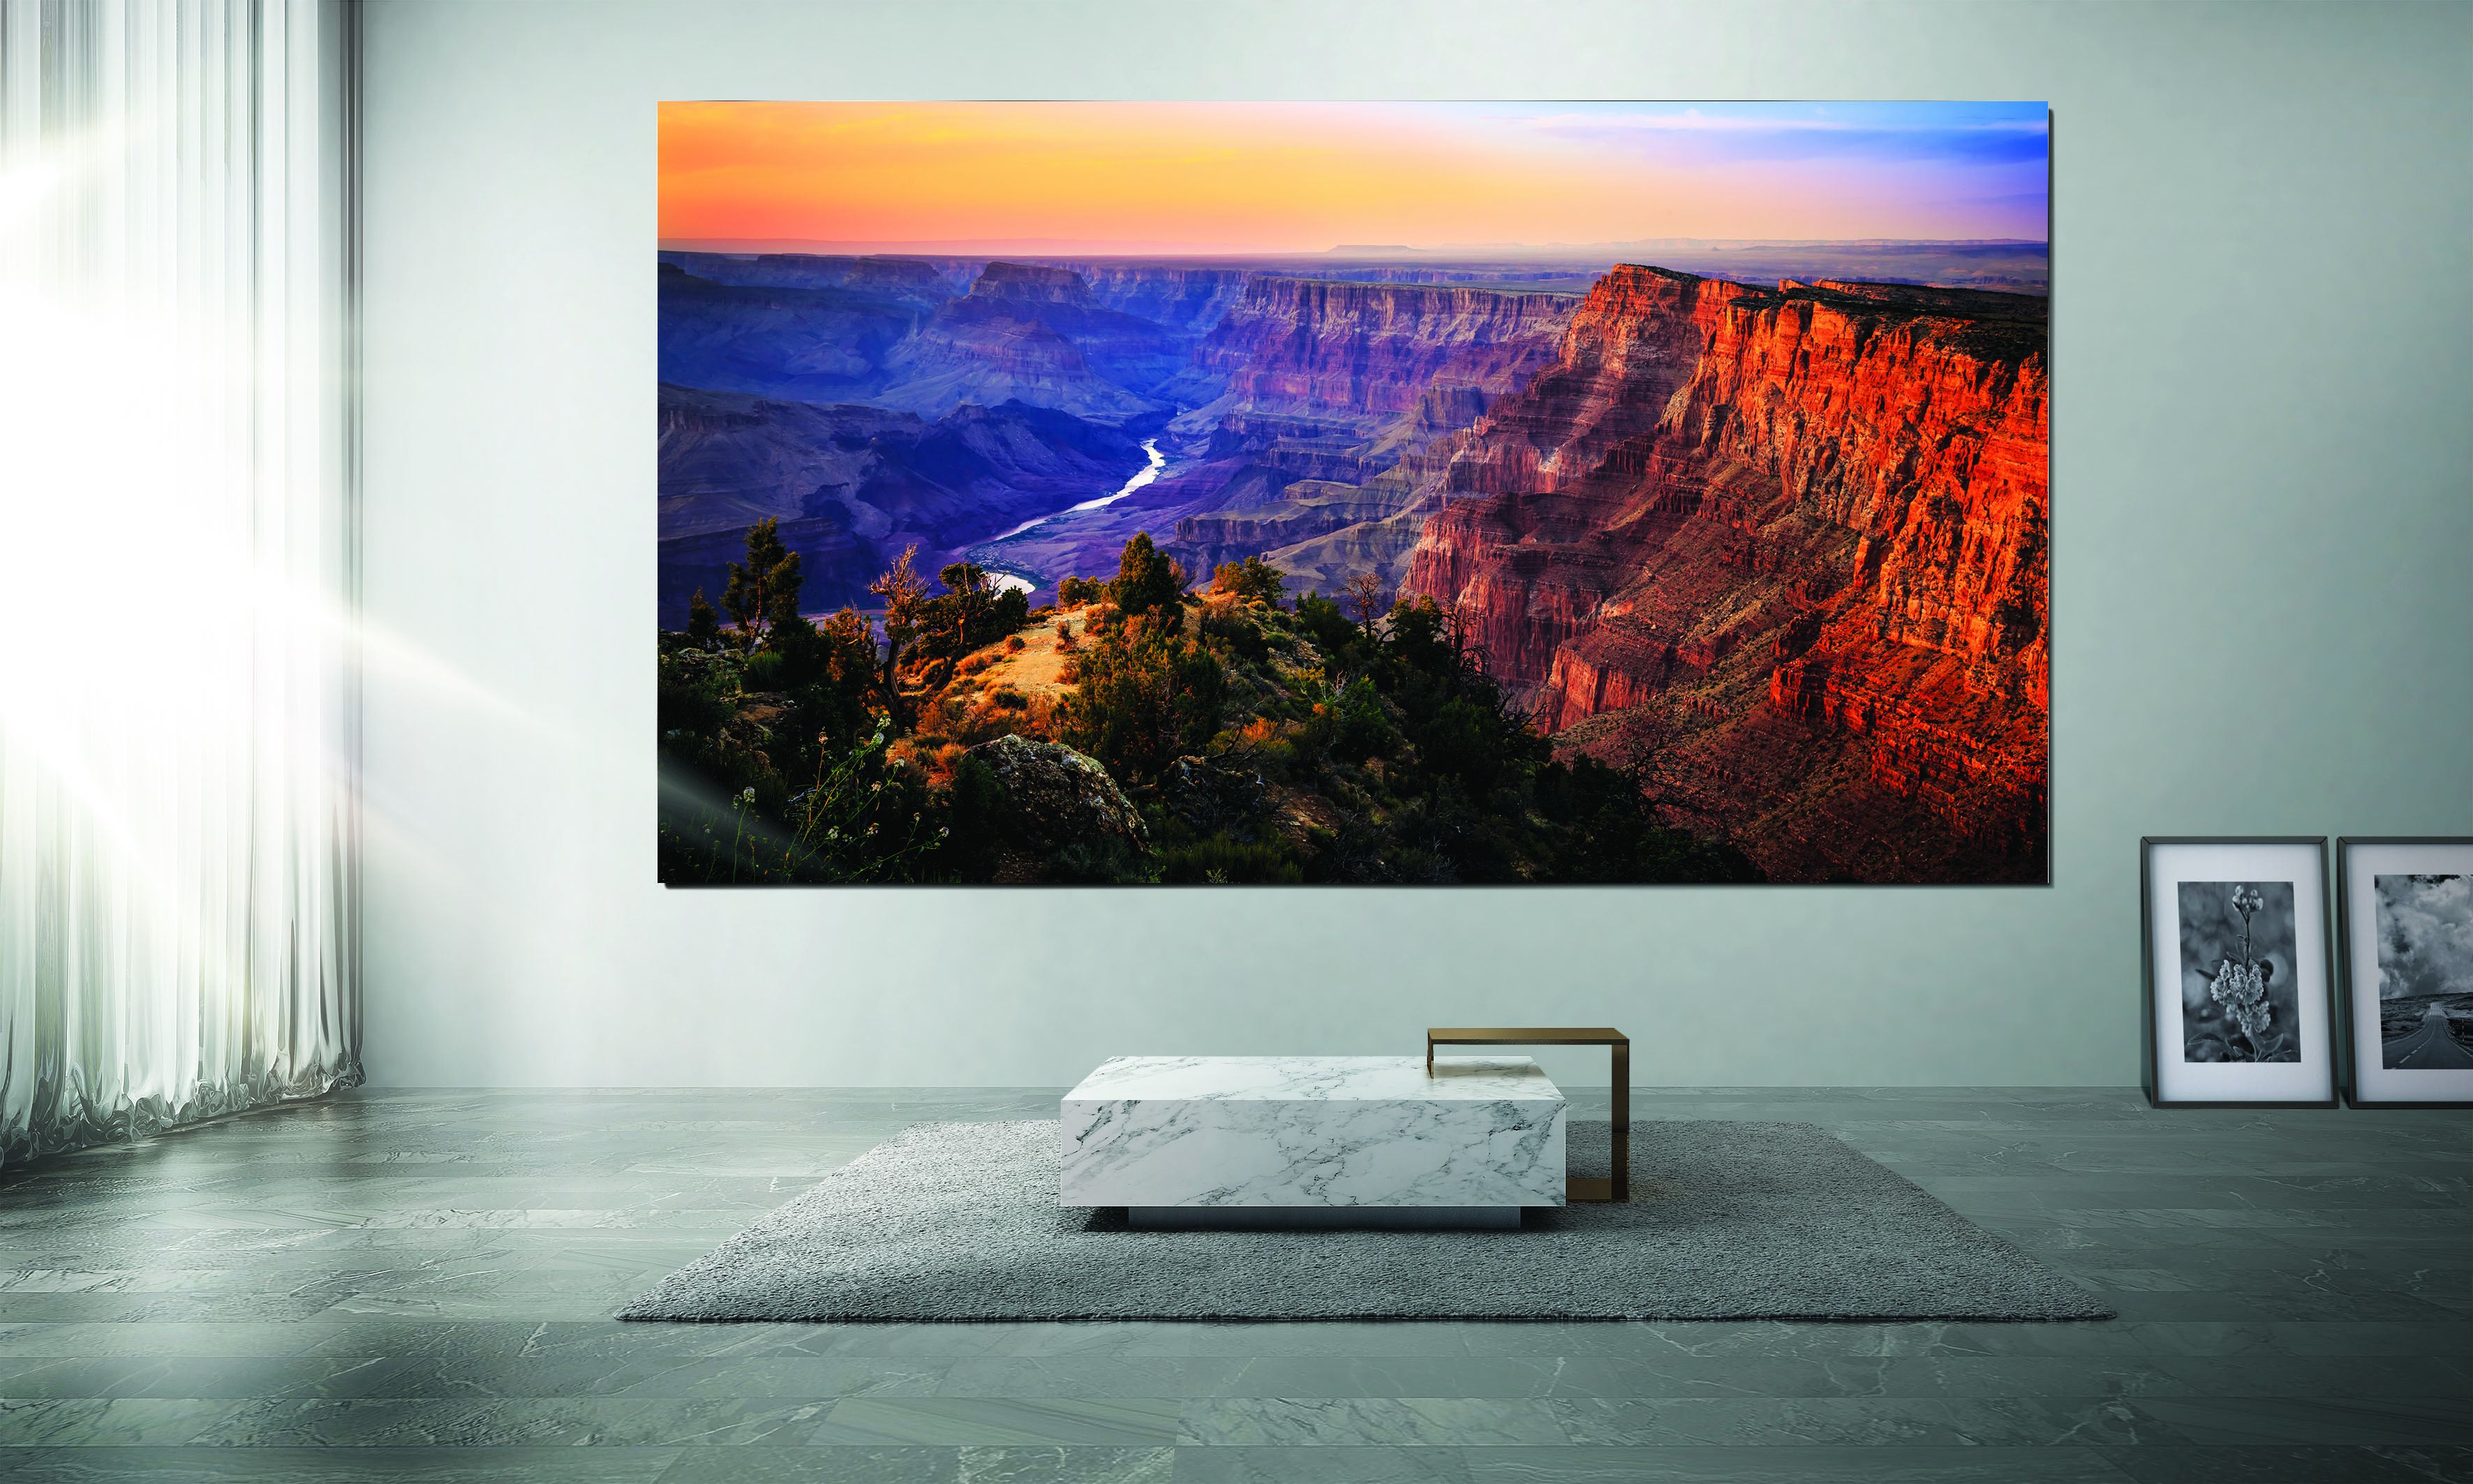 Samsung Introduces The Wall World S Most Spectacular Large Format Microled Display For A Luxurious Viewing Experience Samsung Newsroom India